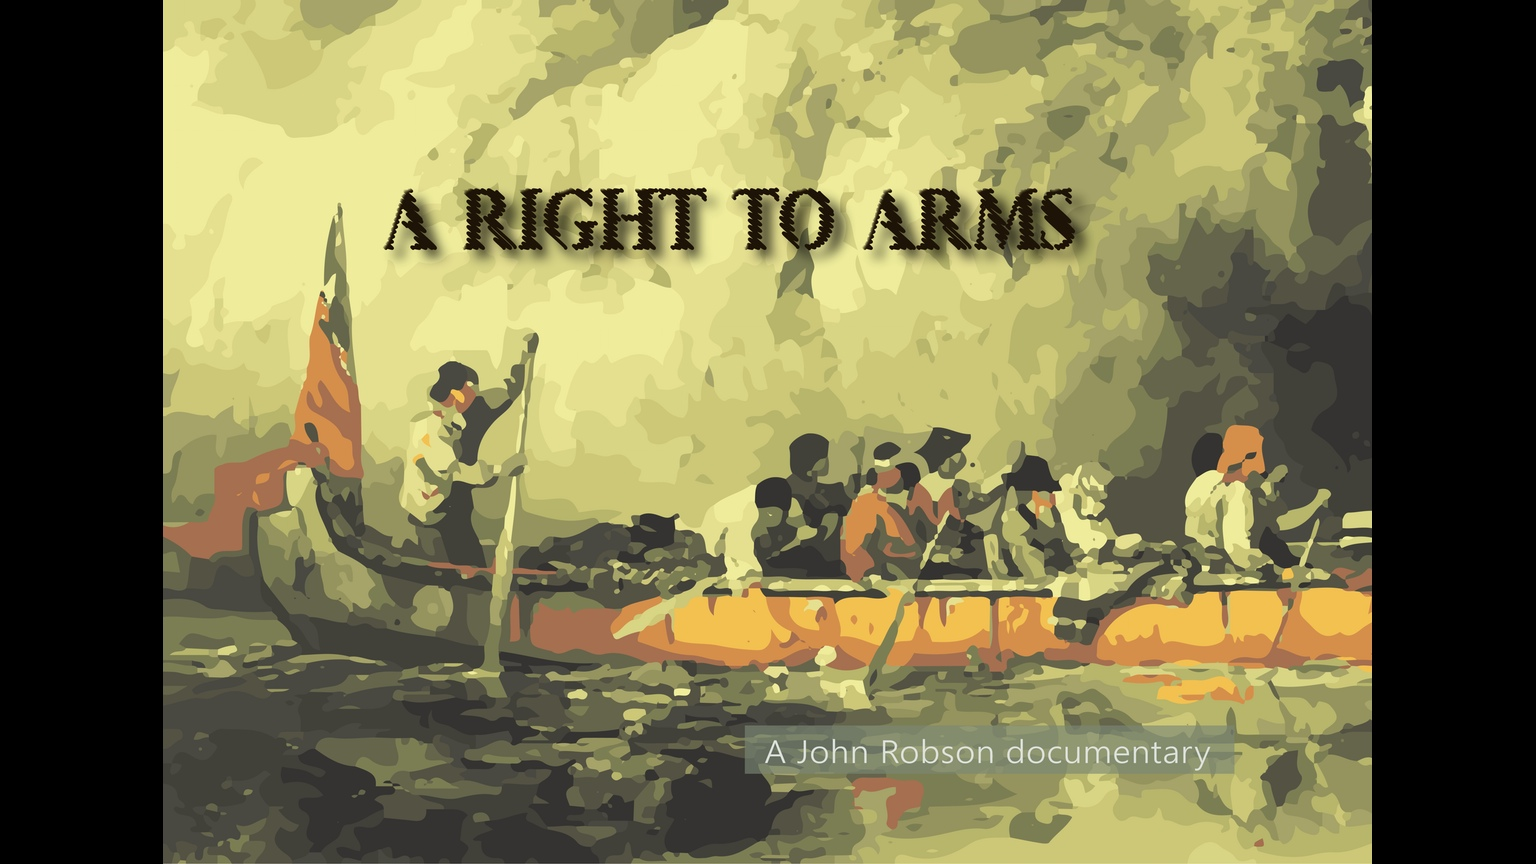 the right to bear arms in ca arighttoarms com